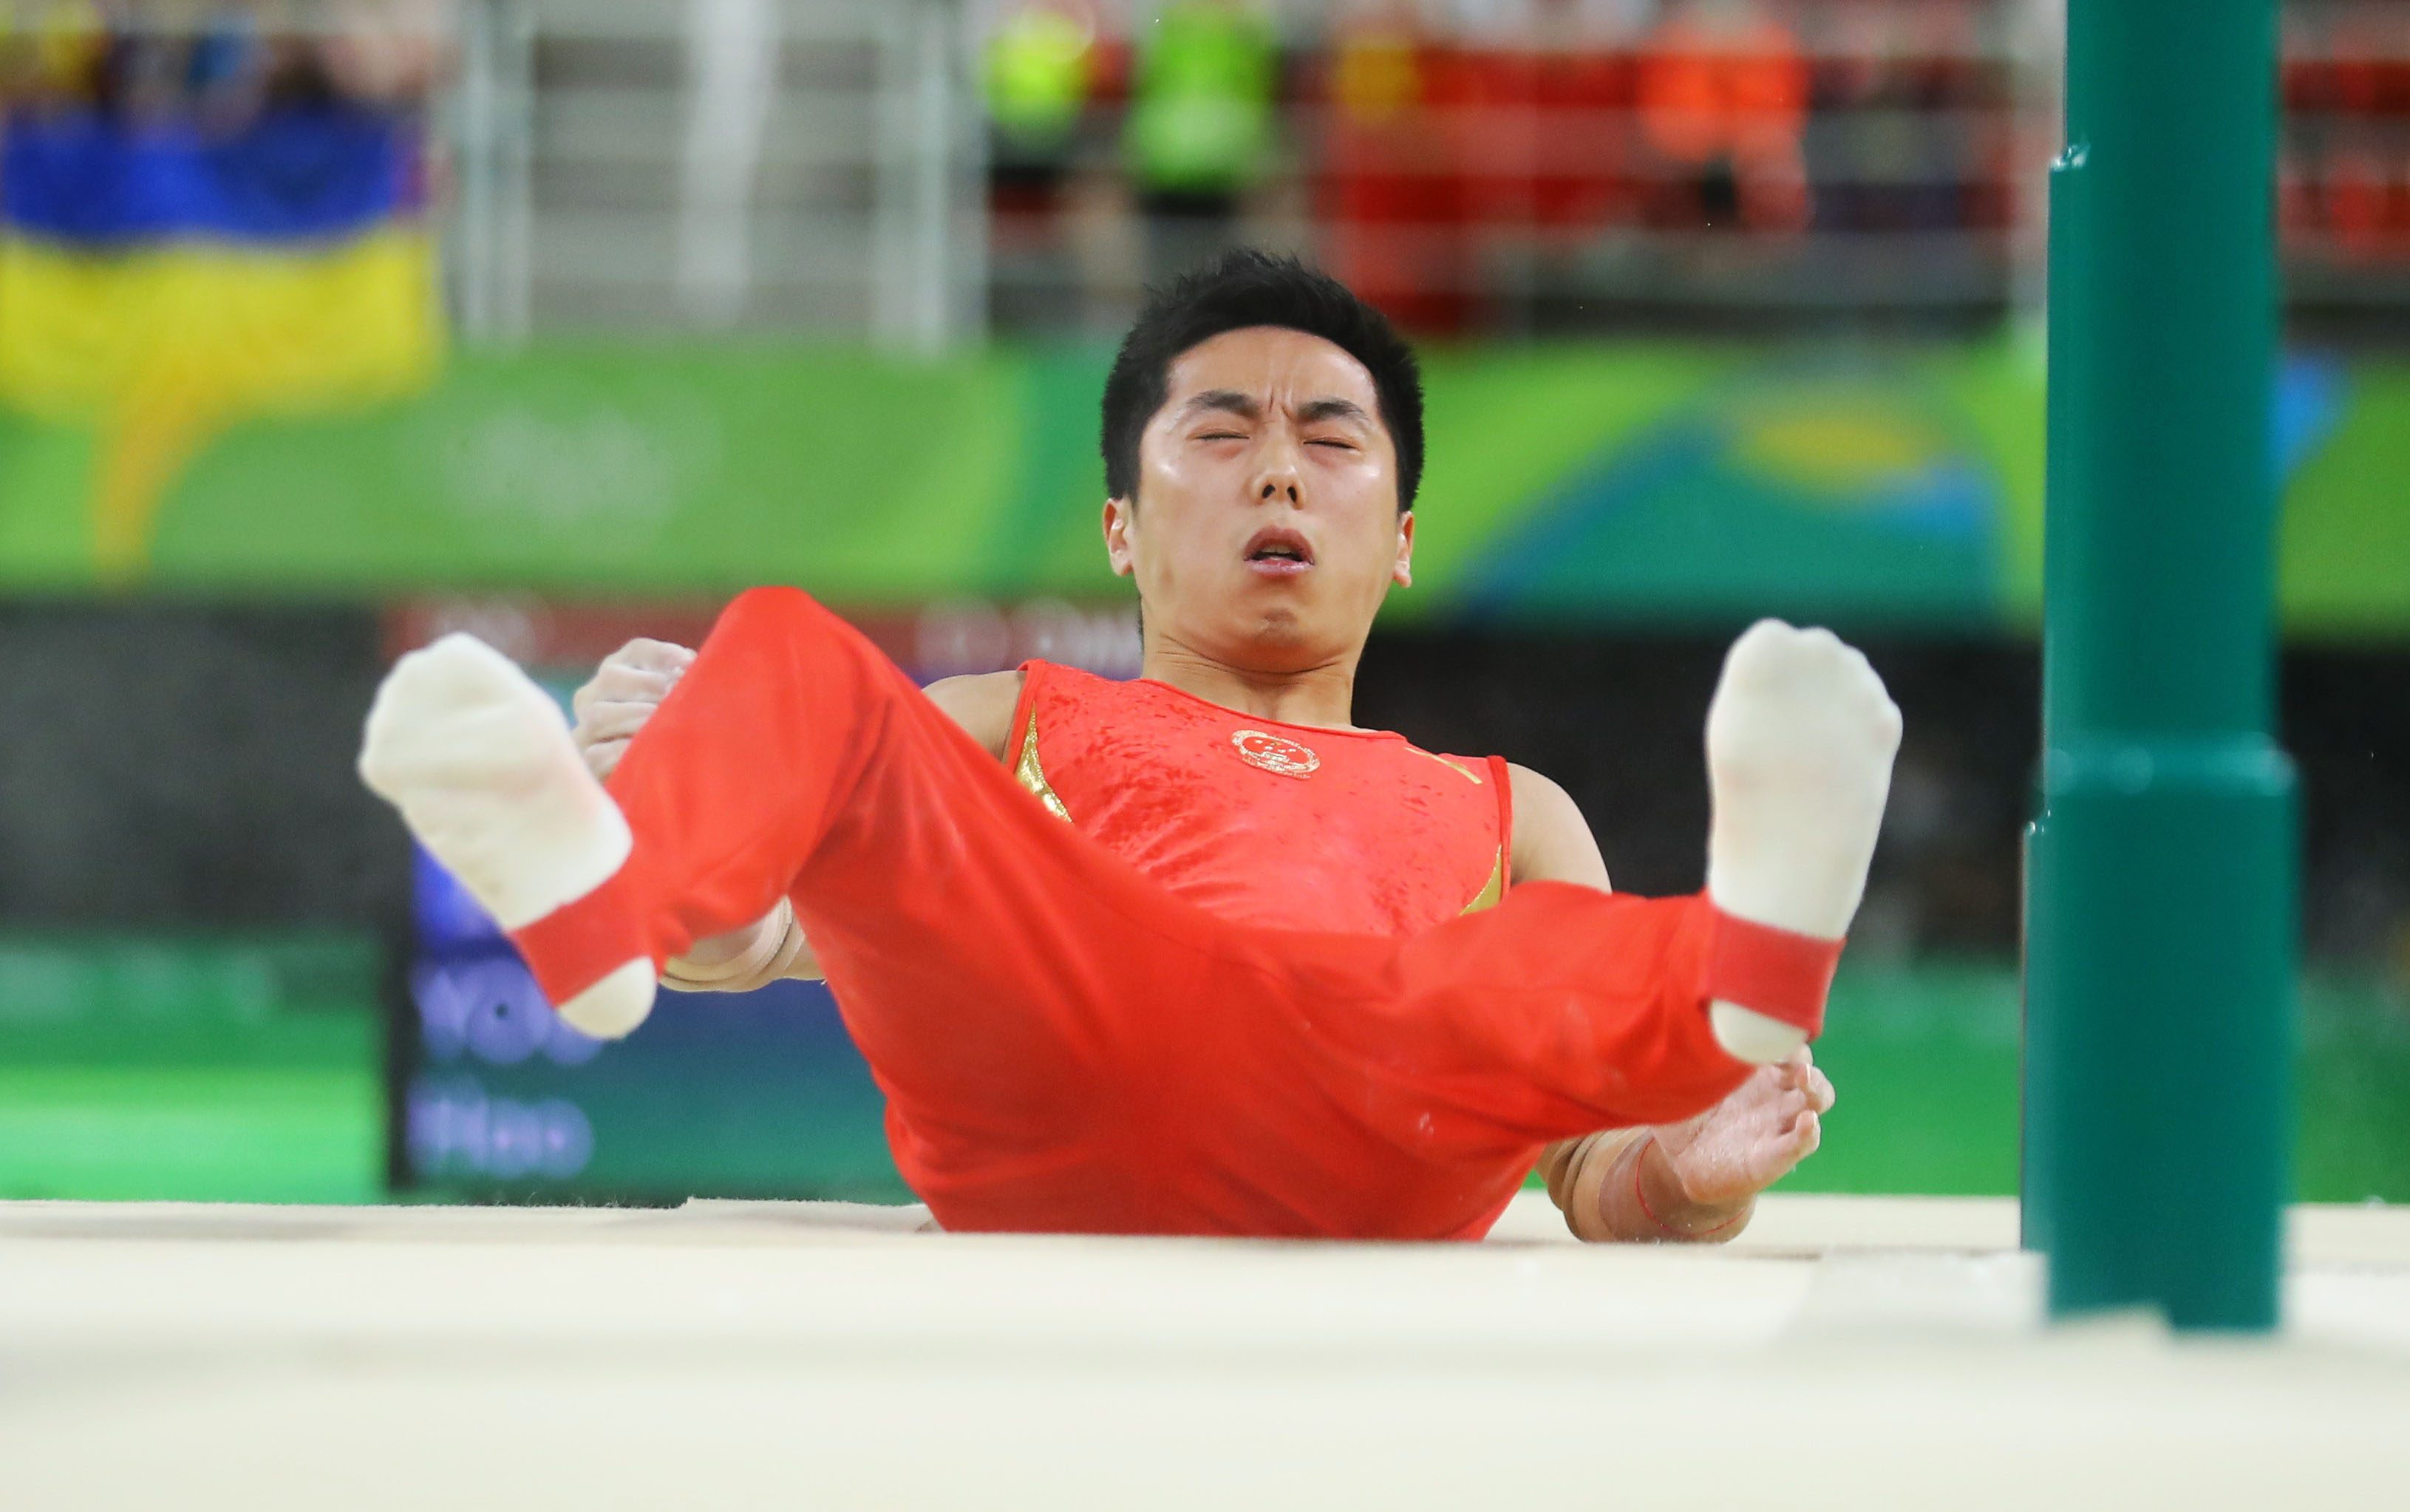 2016-rio-olympics-artistic-gymnastics-mens-parallel-bars-final-e1471588295449